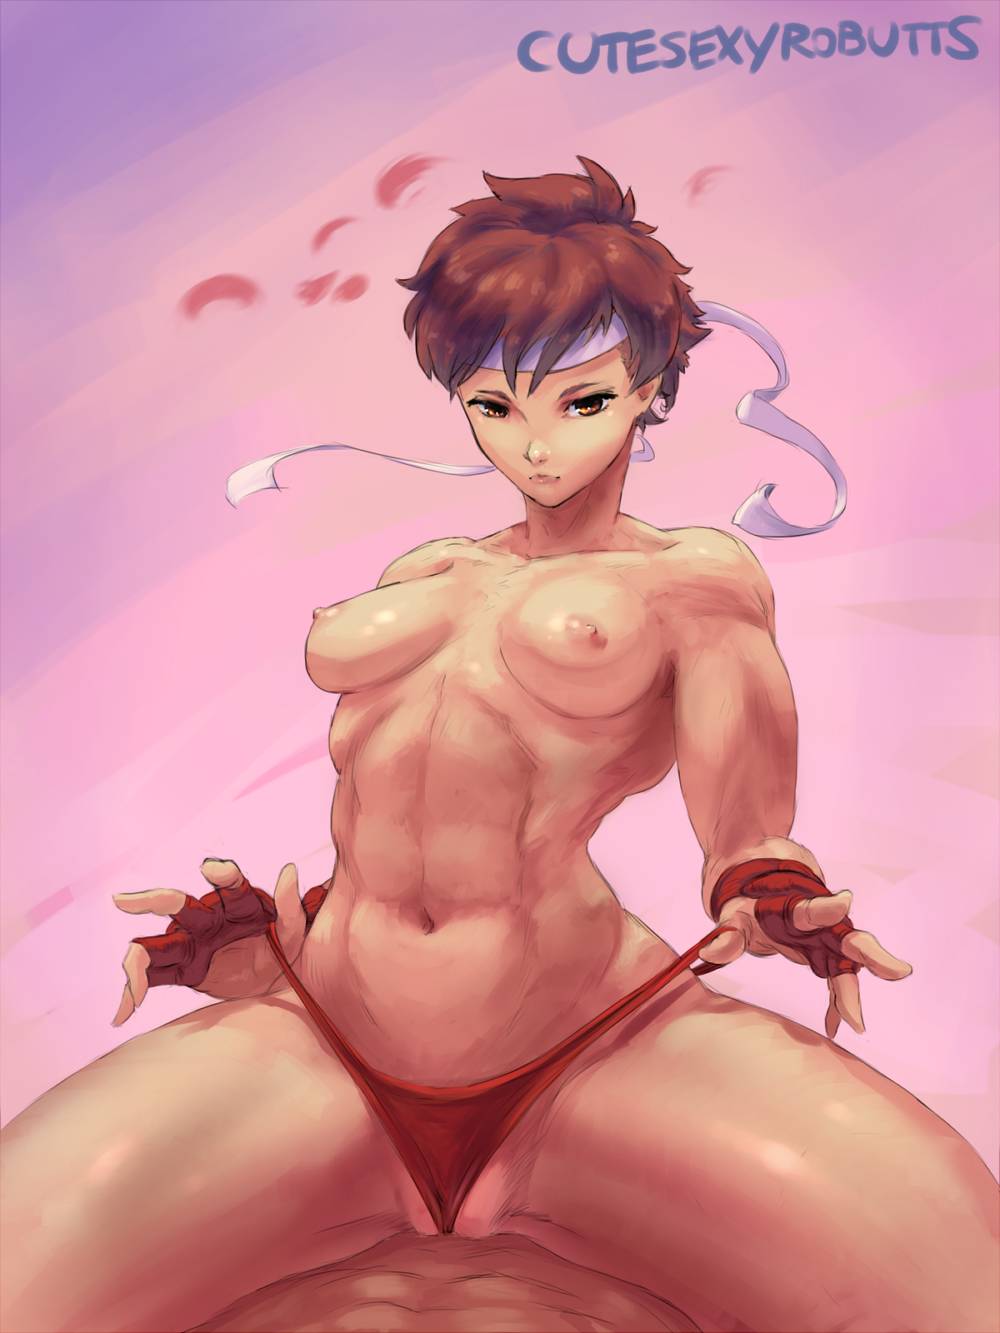 1girl abs areola breasts brown_hair cameltoe capcom cutesexyrobutts fingerless_gloves gradient_background looking_at_viewer navel nipples panties panty_pull sakura_kasugano short_hair sitting solo_focus spread_legs straddling street_fighter toned